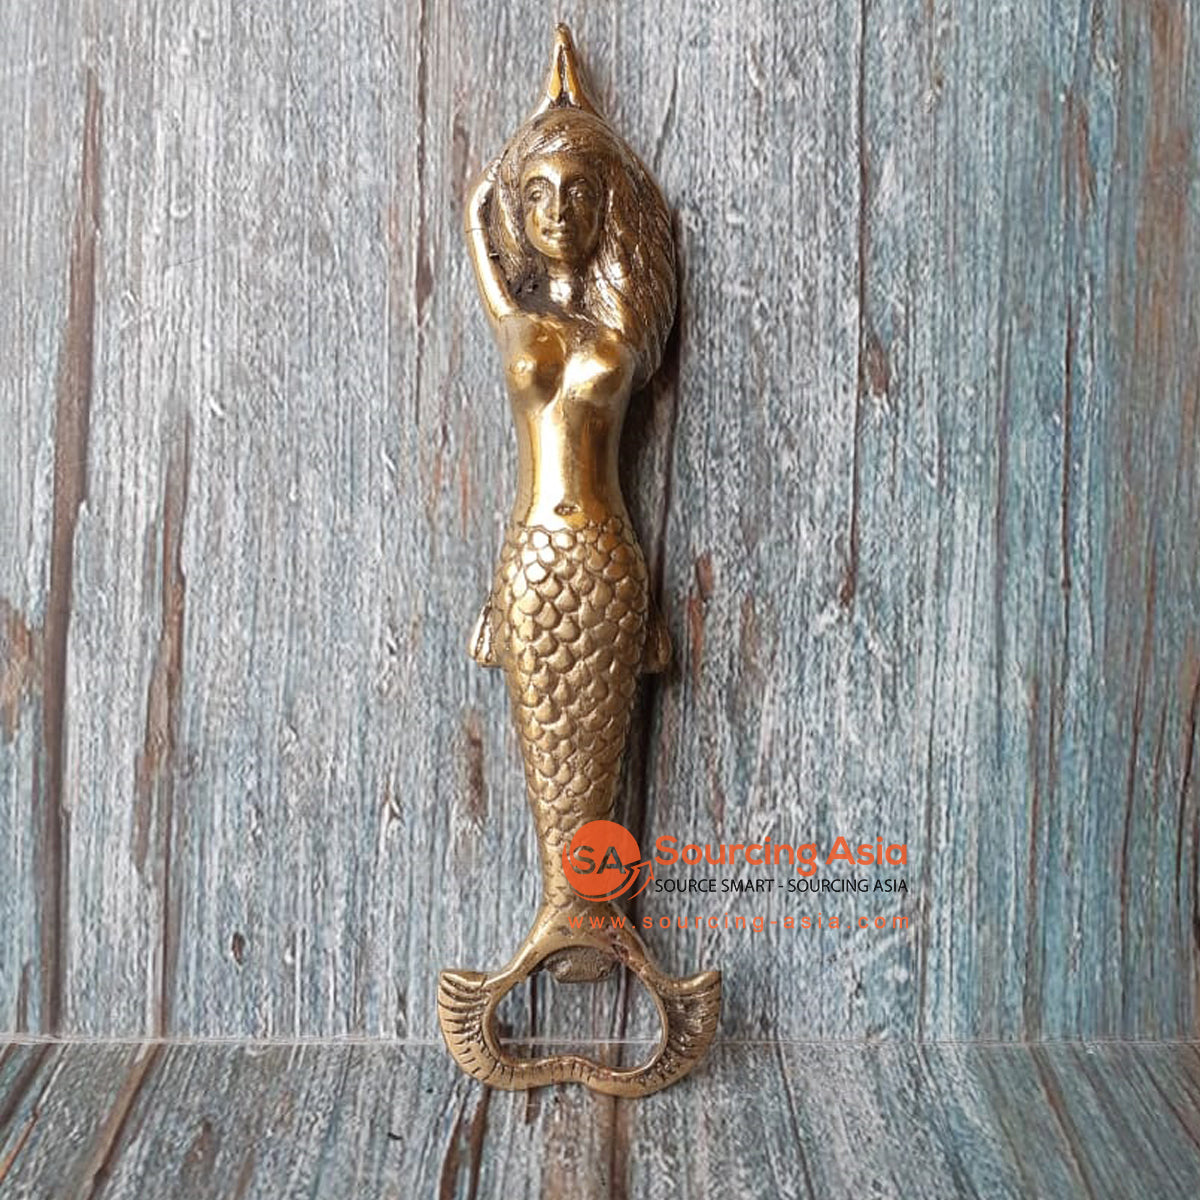 GB186 BRONZE BOTTLE OPENER MERMAID